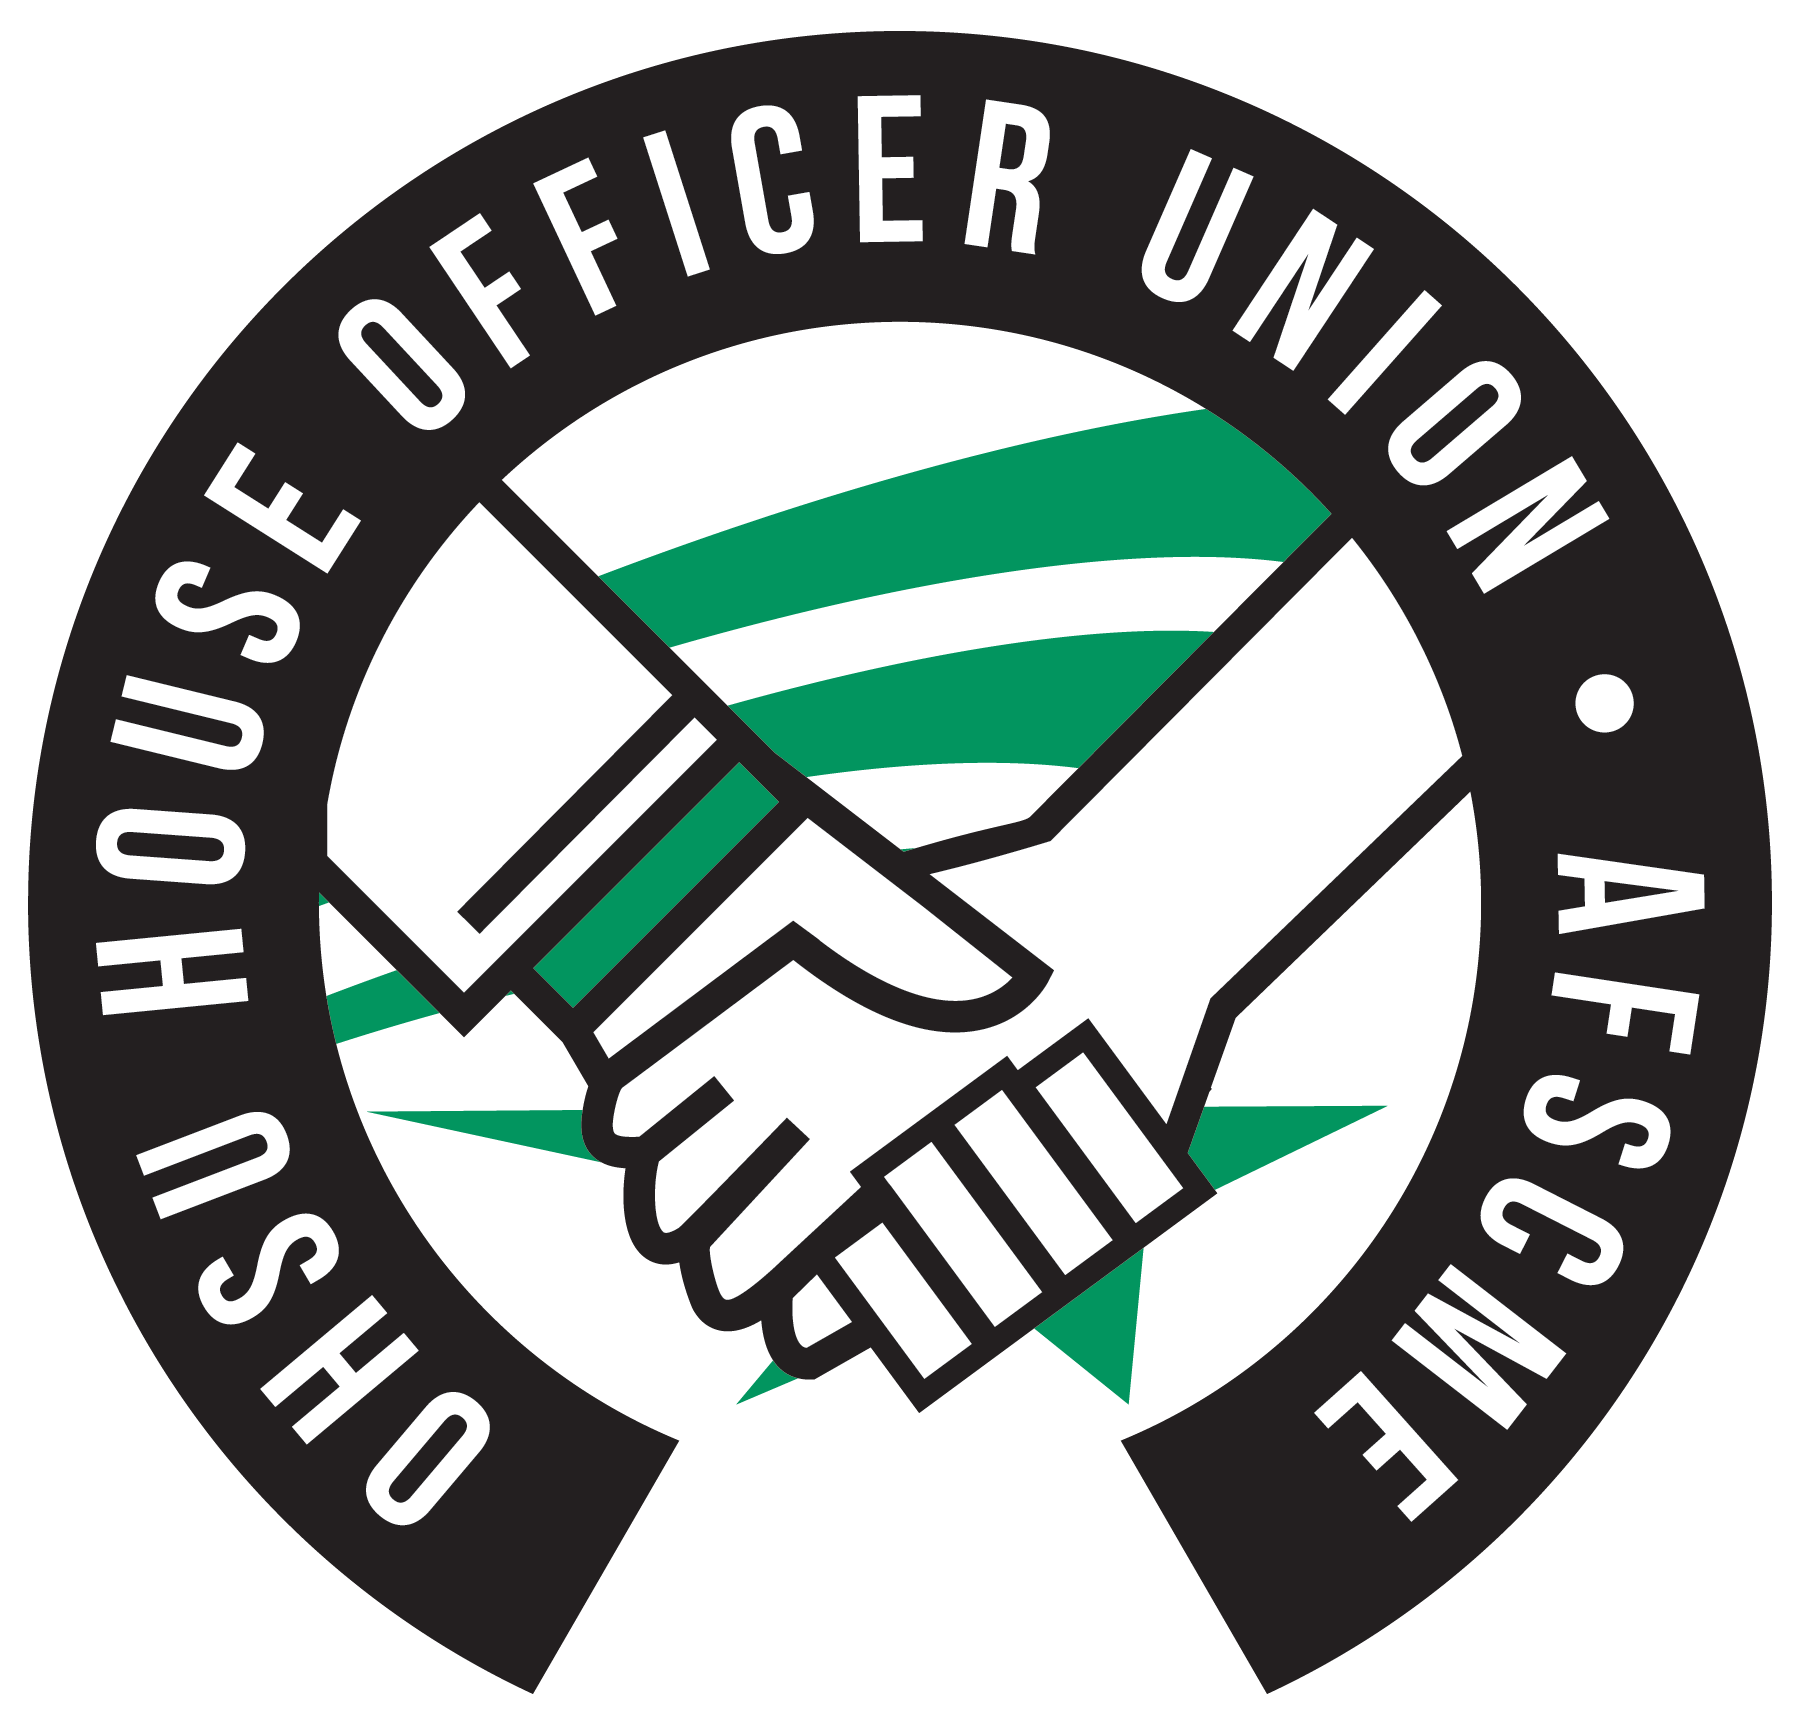 Dues | AFSCME Union Hall